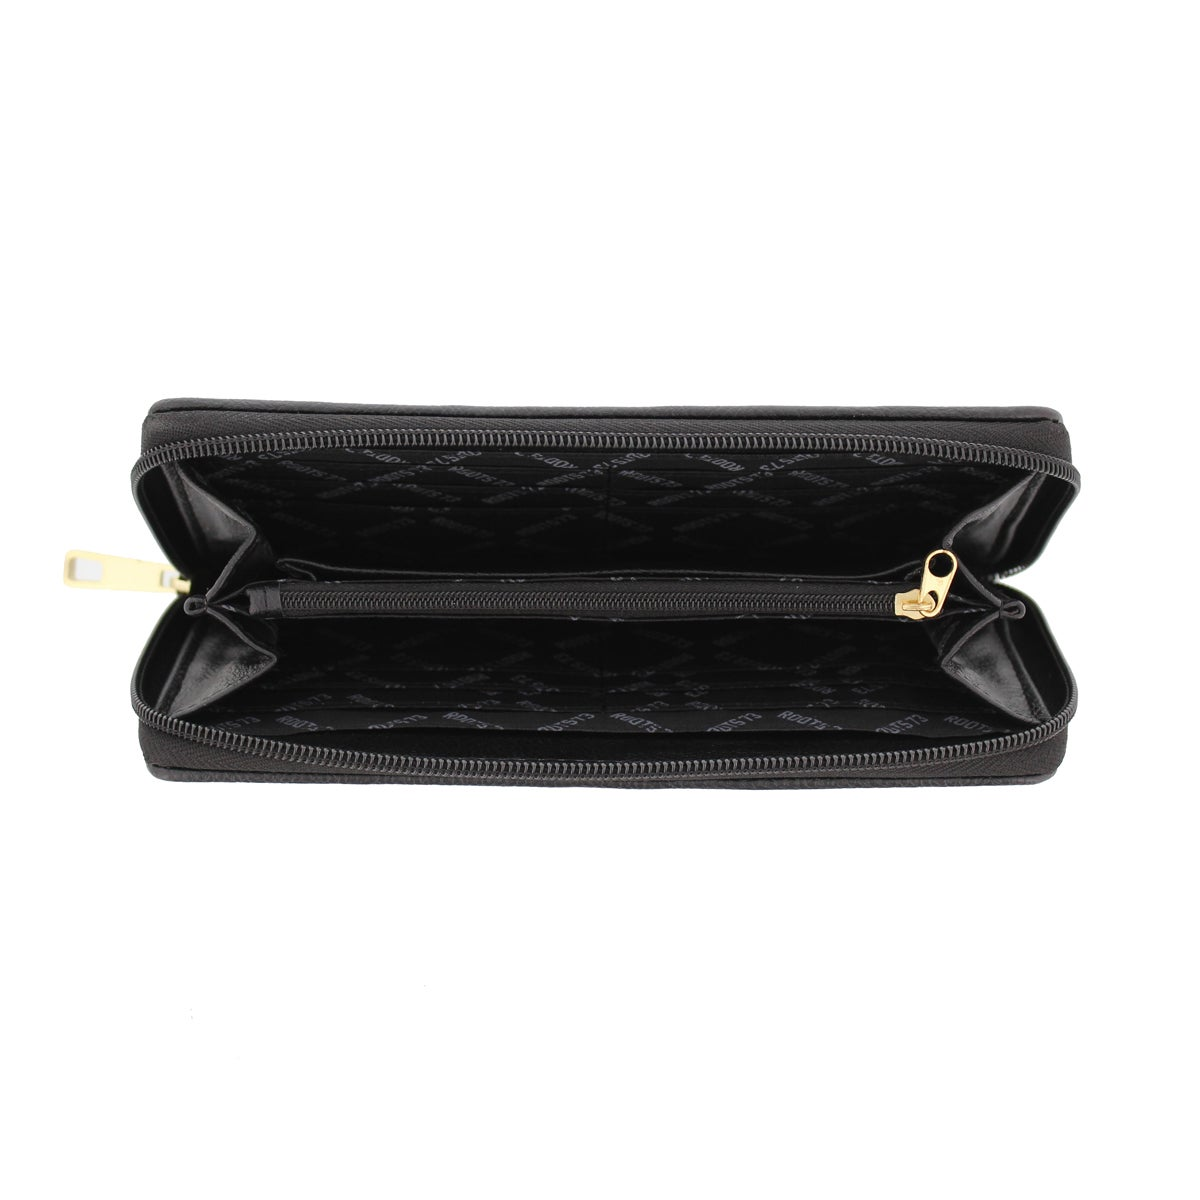 Lds Roots73 Mod 71IP black wristlet